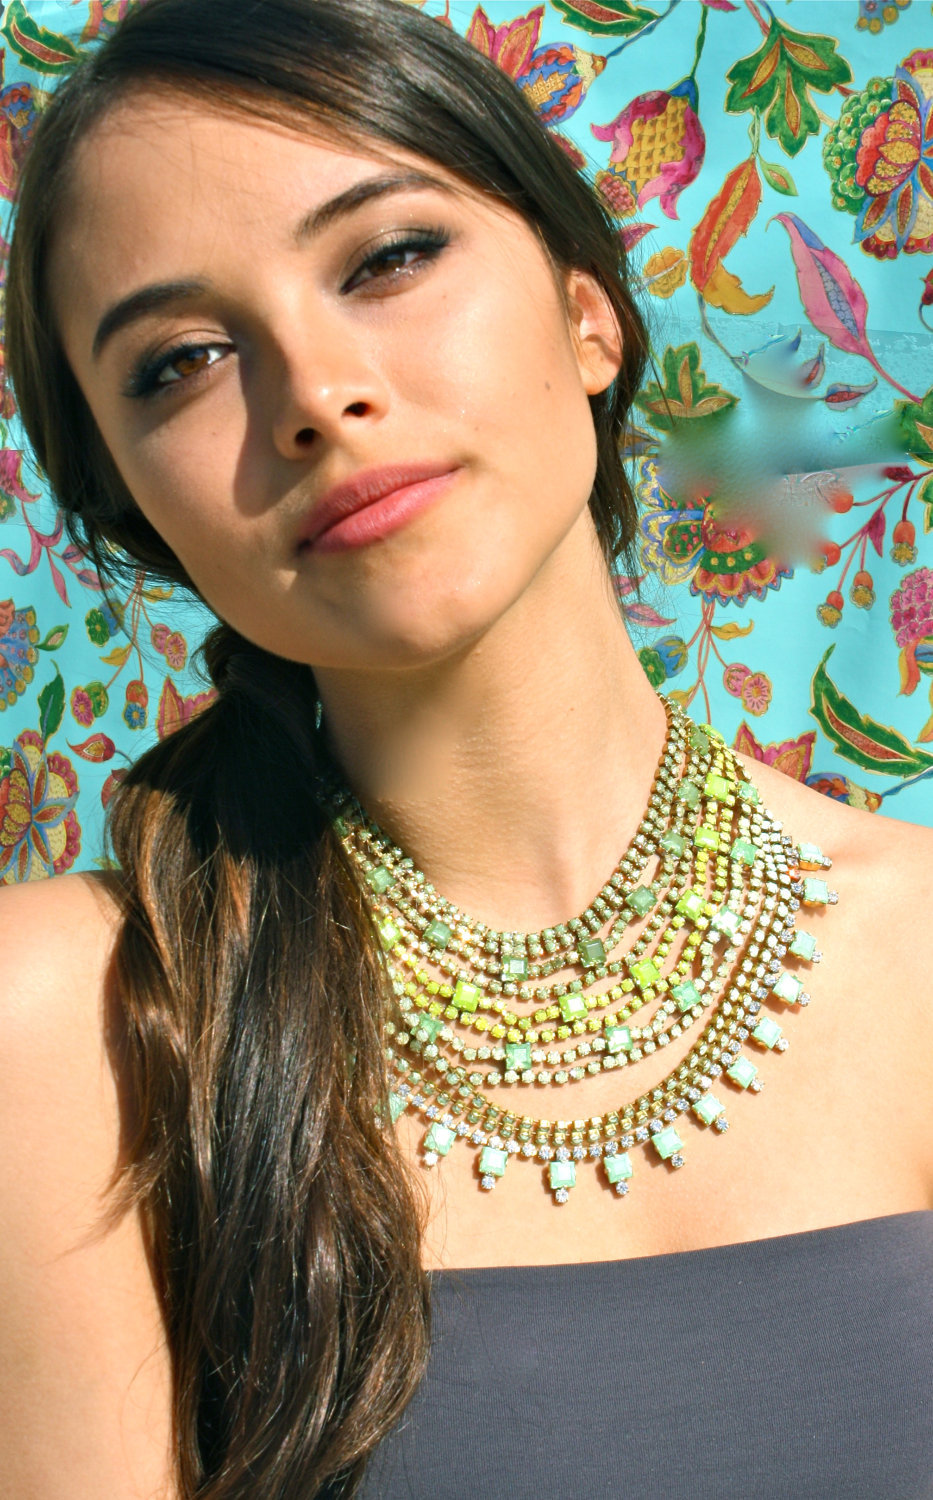 Bridesmaid-gift-ideas-bright-statement-necklace-green-yellow-ombre.full